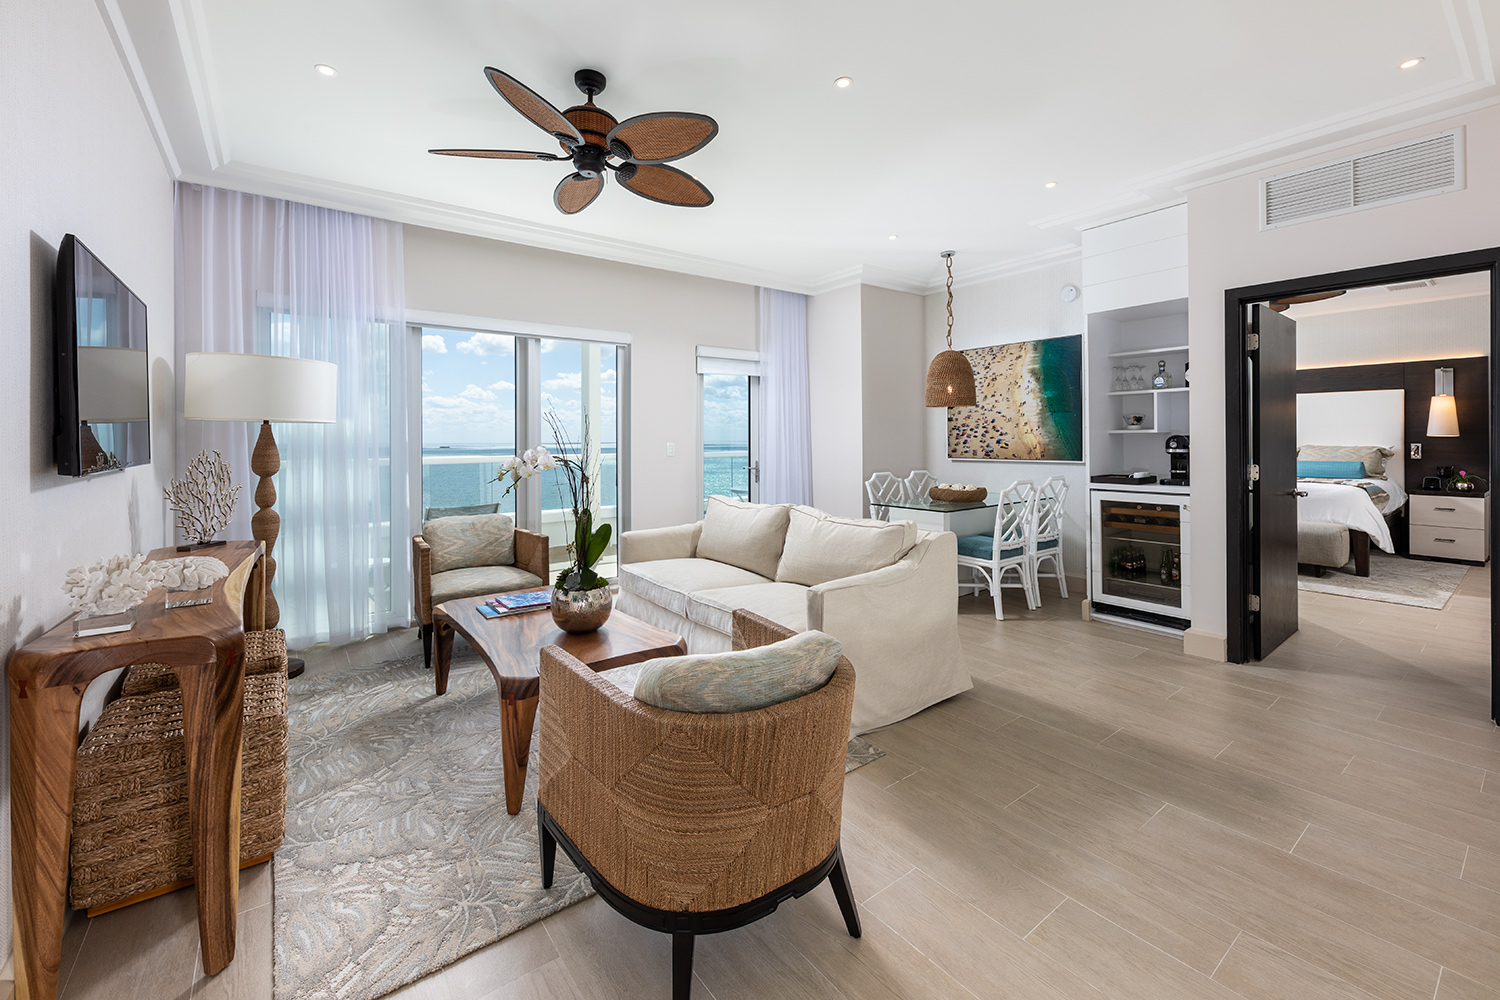 The-Palms-Hotel-March-2019-room-1206-03